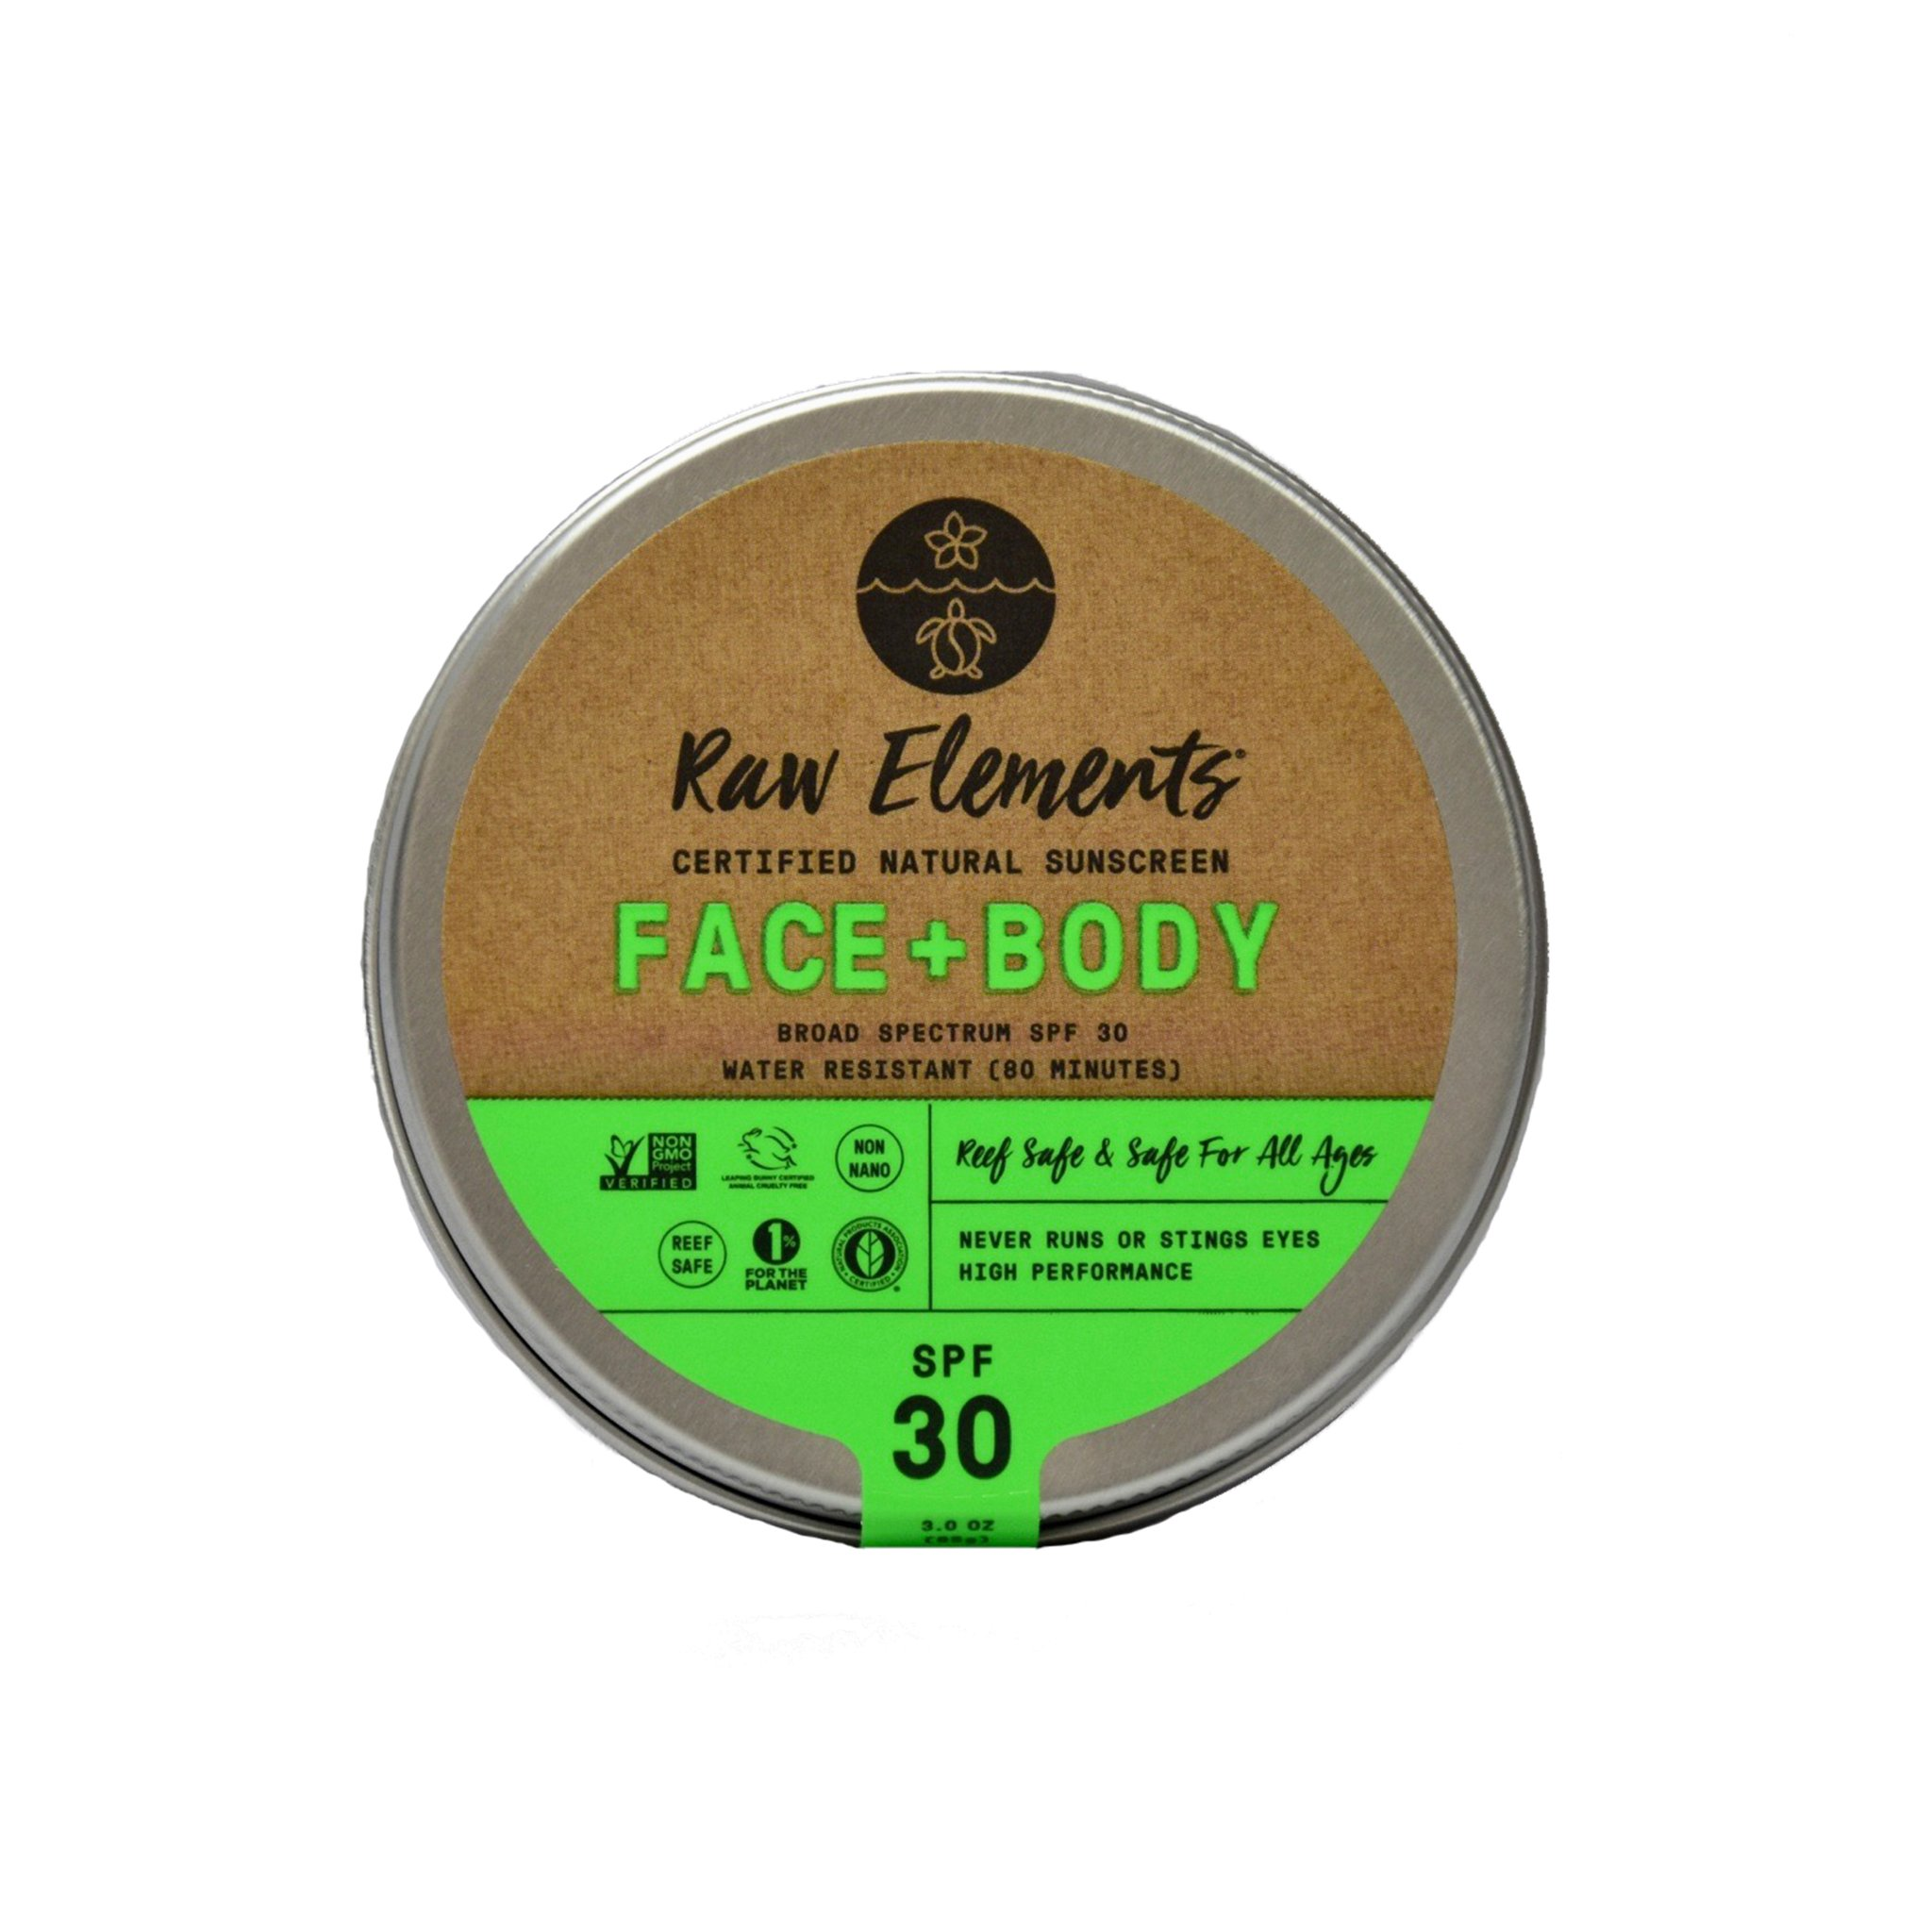 Raw Elements face and body product image